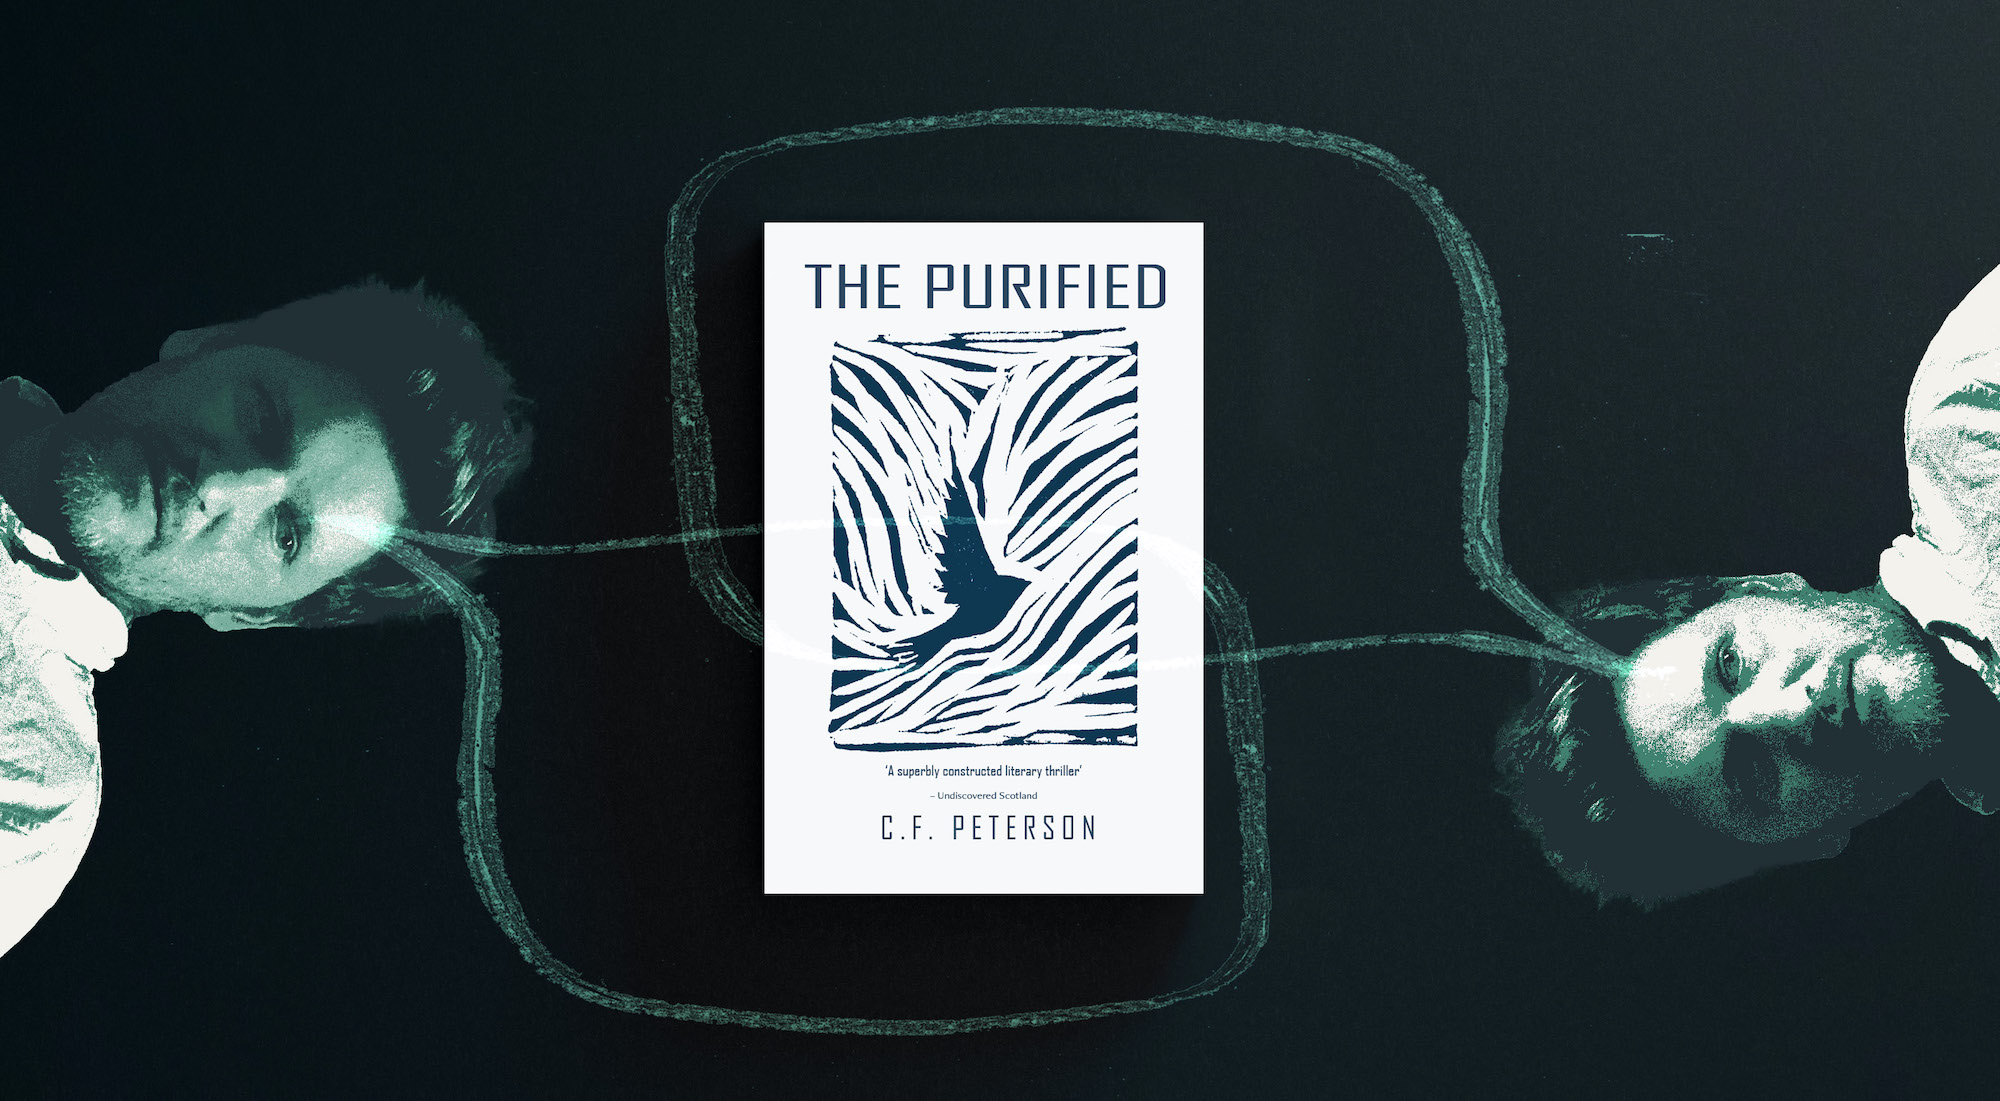 Cover of The Purified overlaid by green speech bubbles coming from C F Peterson's portrait